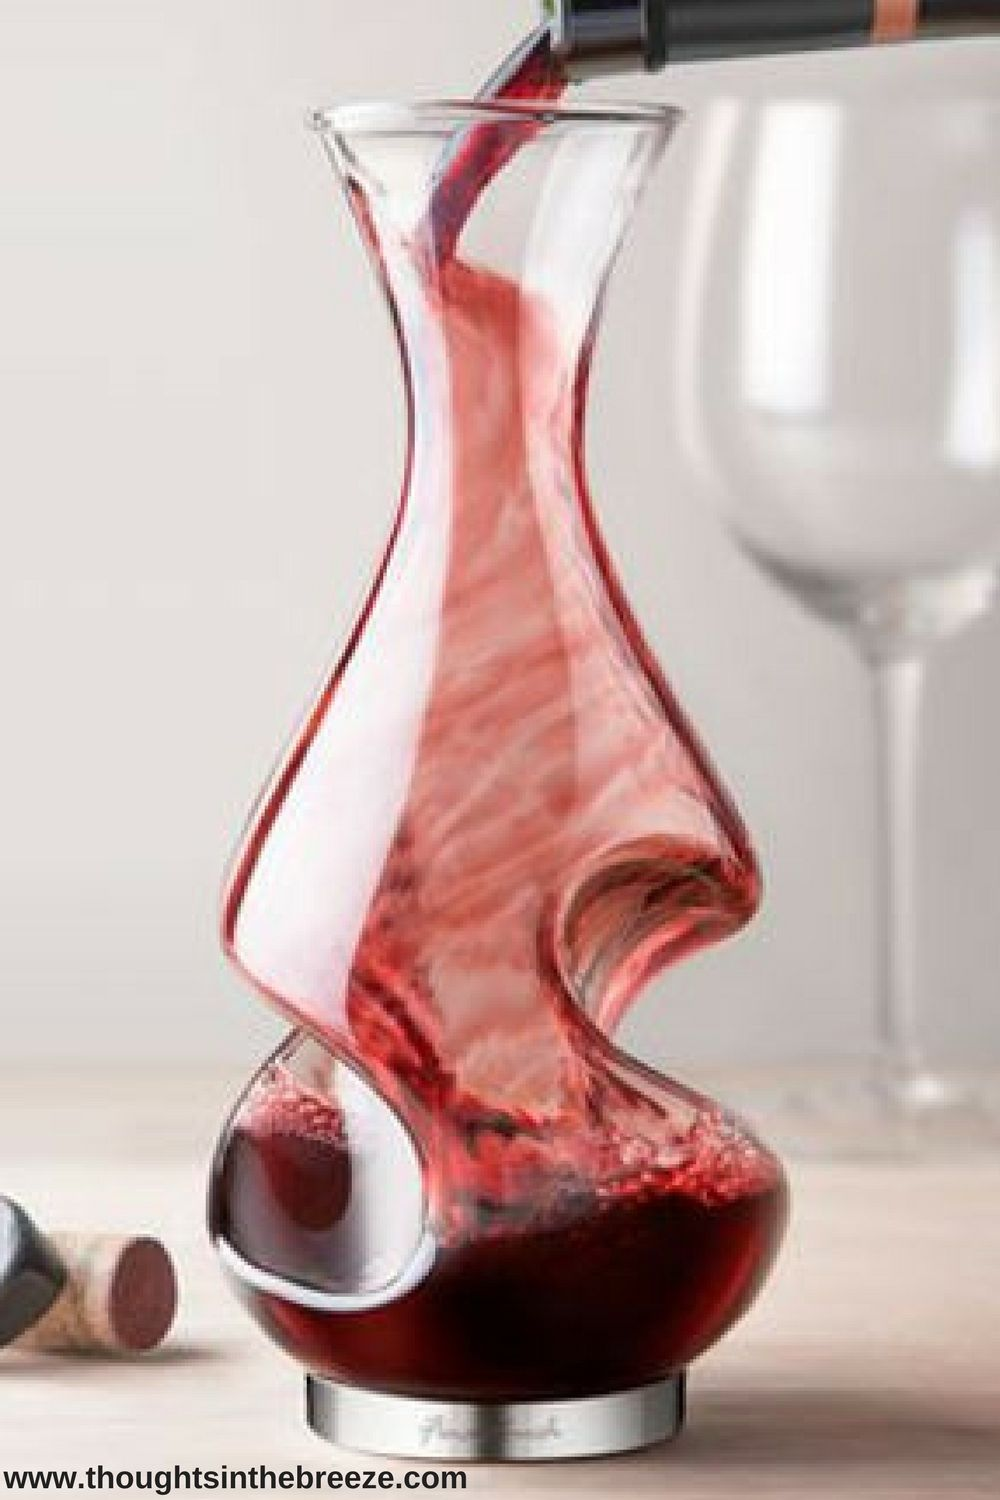 39 95 Modena Wine Aerator Make Wine Aeration And Oxygenation A Beautiful Process With This Modena Wine Aerator Wine Decanter Red Wine Decanter Wine Preserver